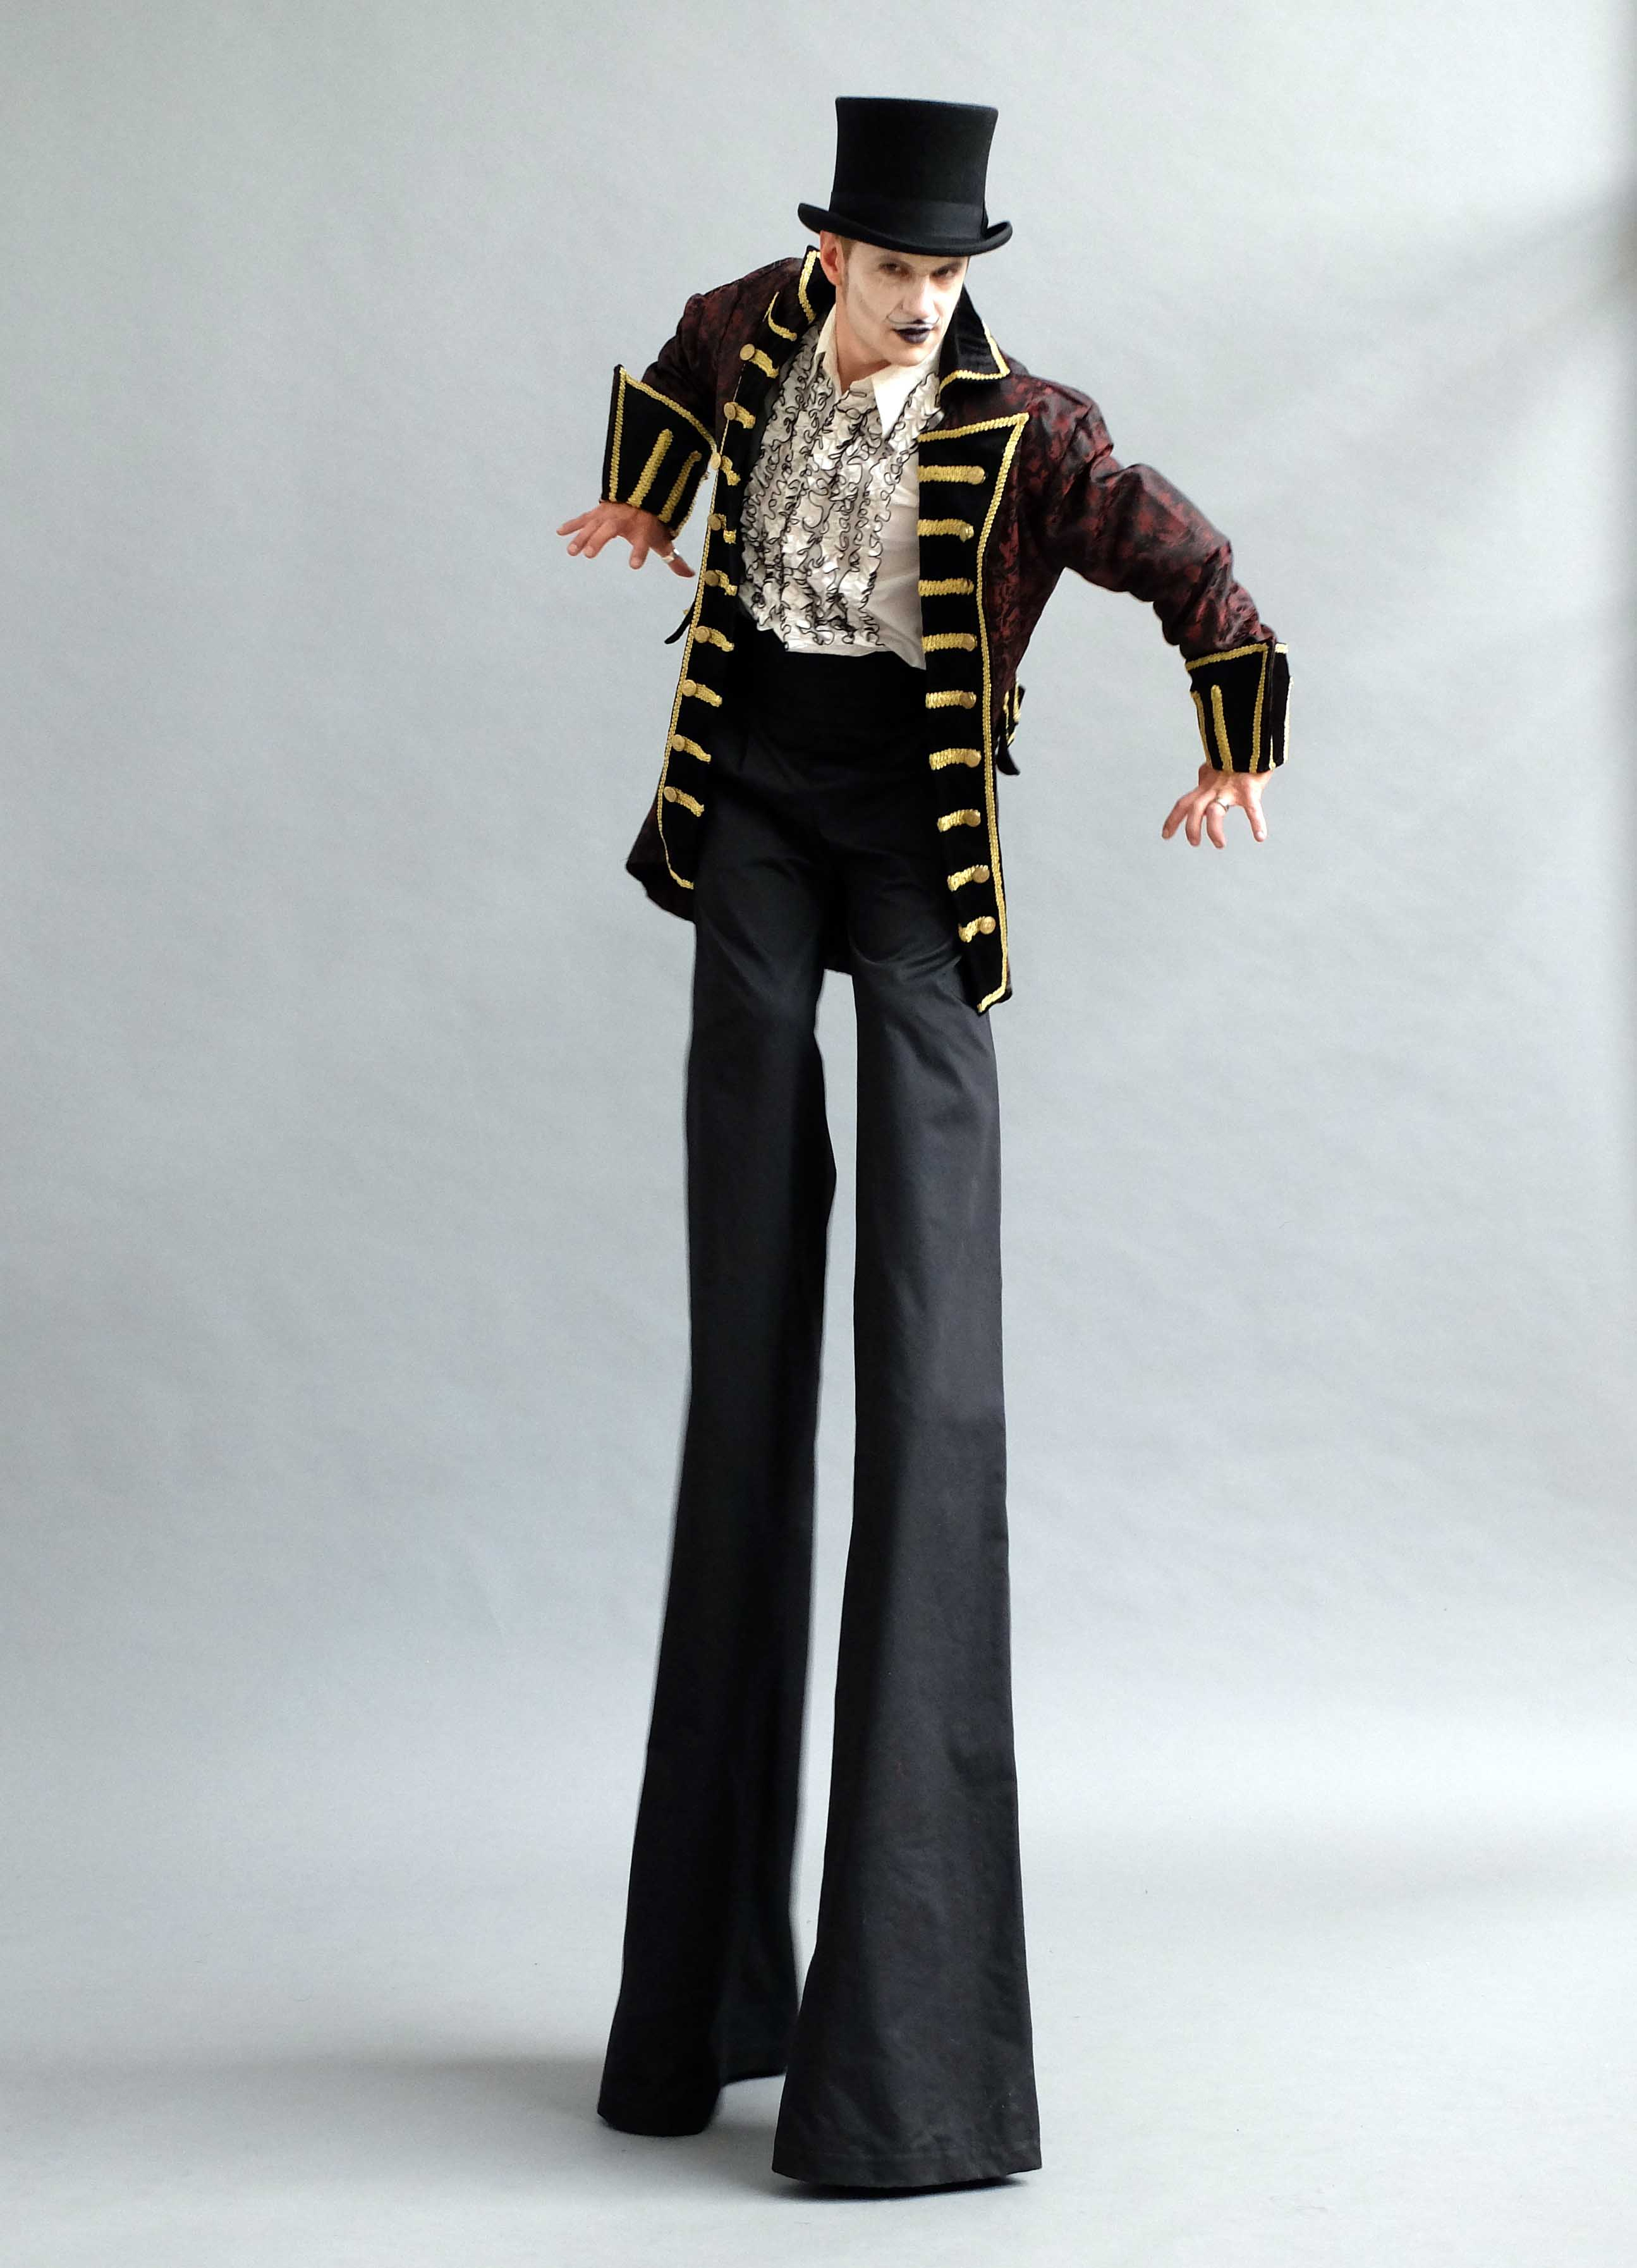 Dark Circus Ringmaster Stilts